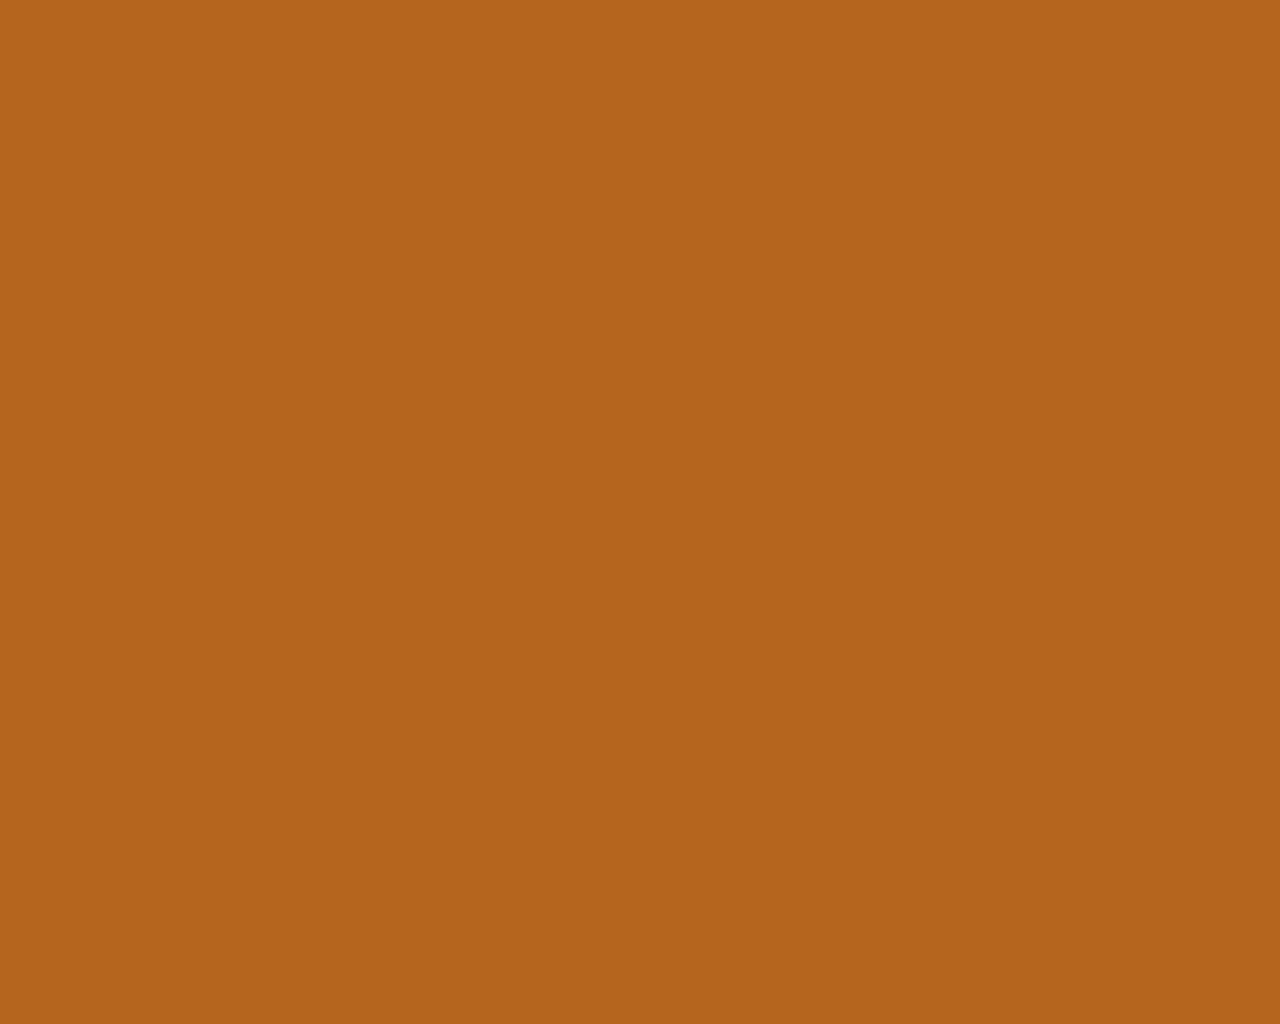 1280x1024 Light Brown Solid Color Background